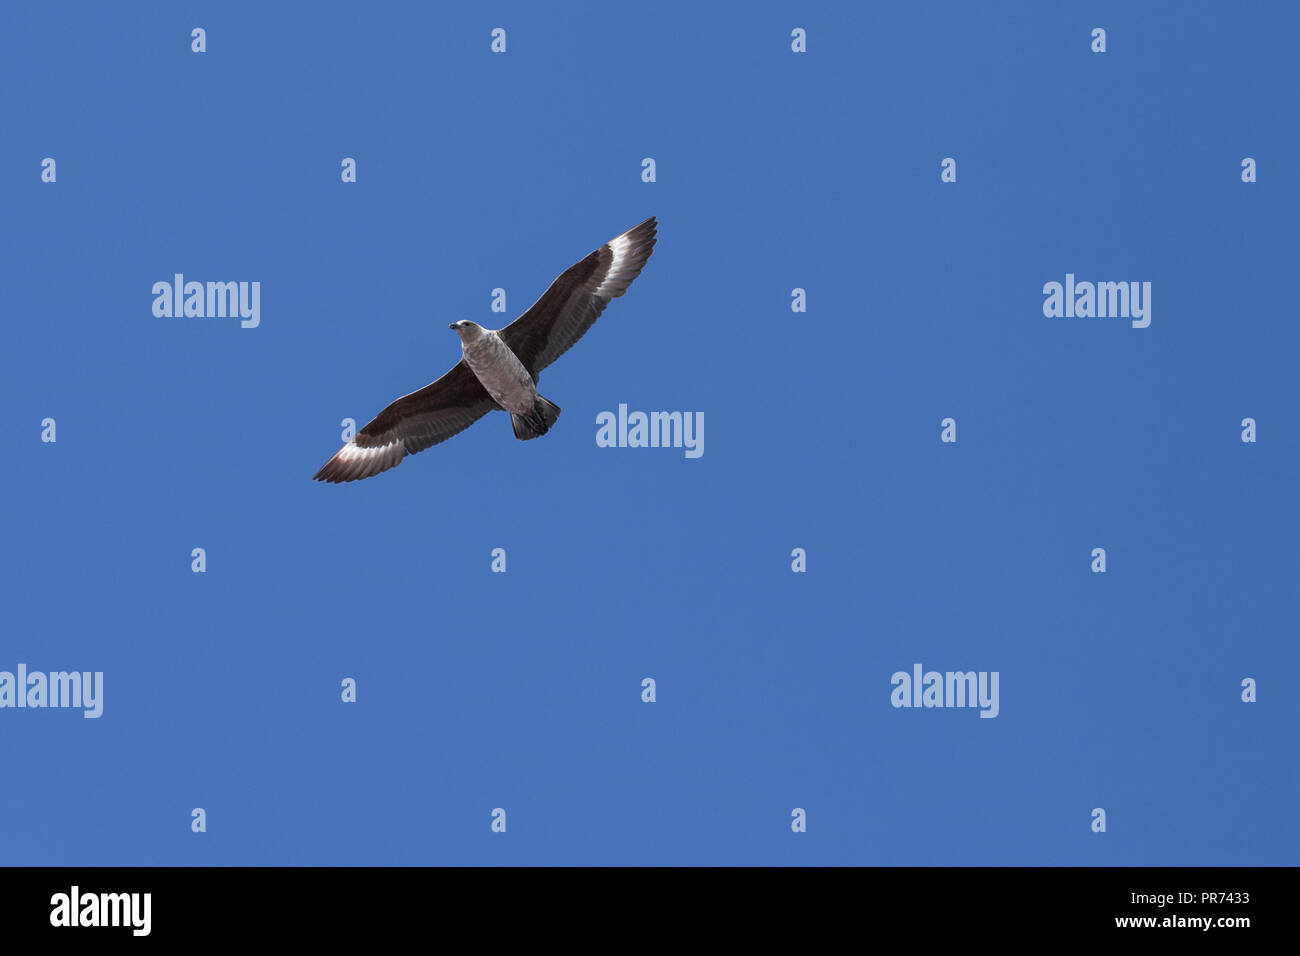 South Polar Skua flying against a blue sky with wings spread wide gliding over head. - Stock Image